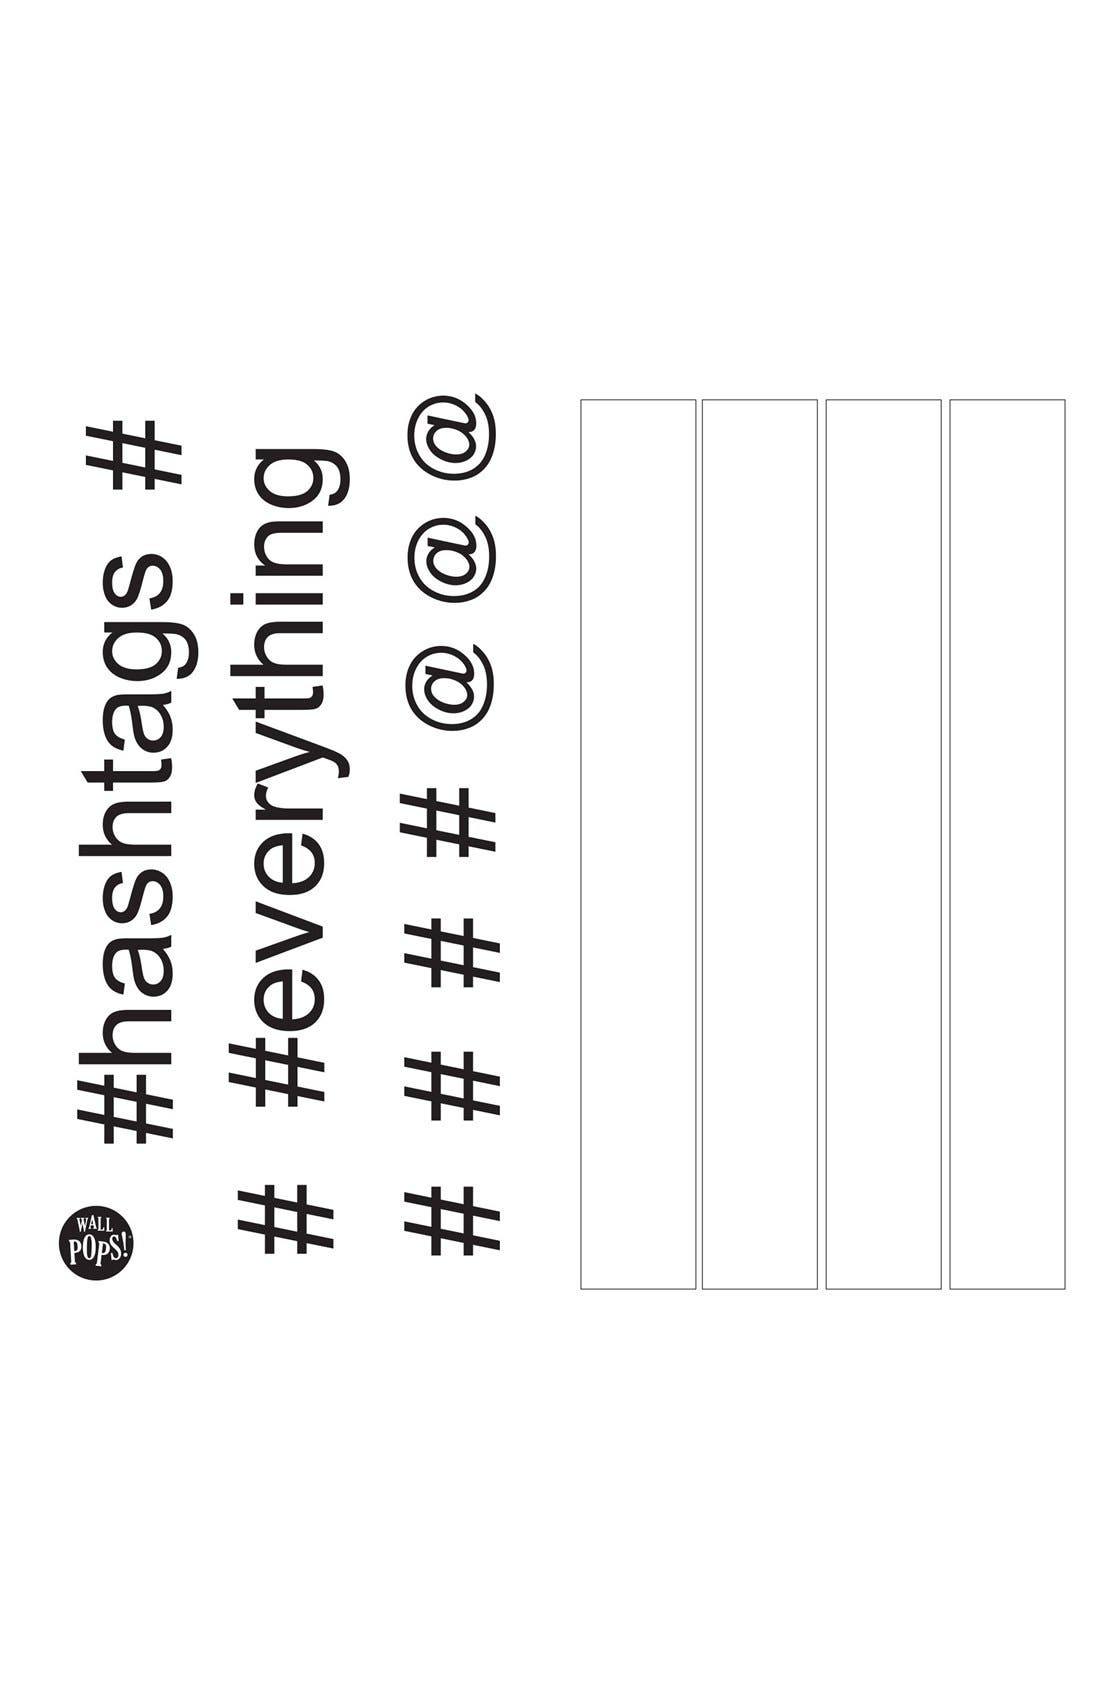 Alternate Image 3  - Wallpops 'Hashtag' Dry Erase Wall Decals (Set of 14)